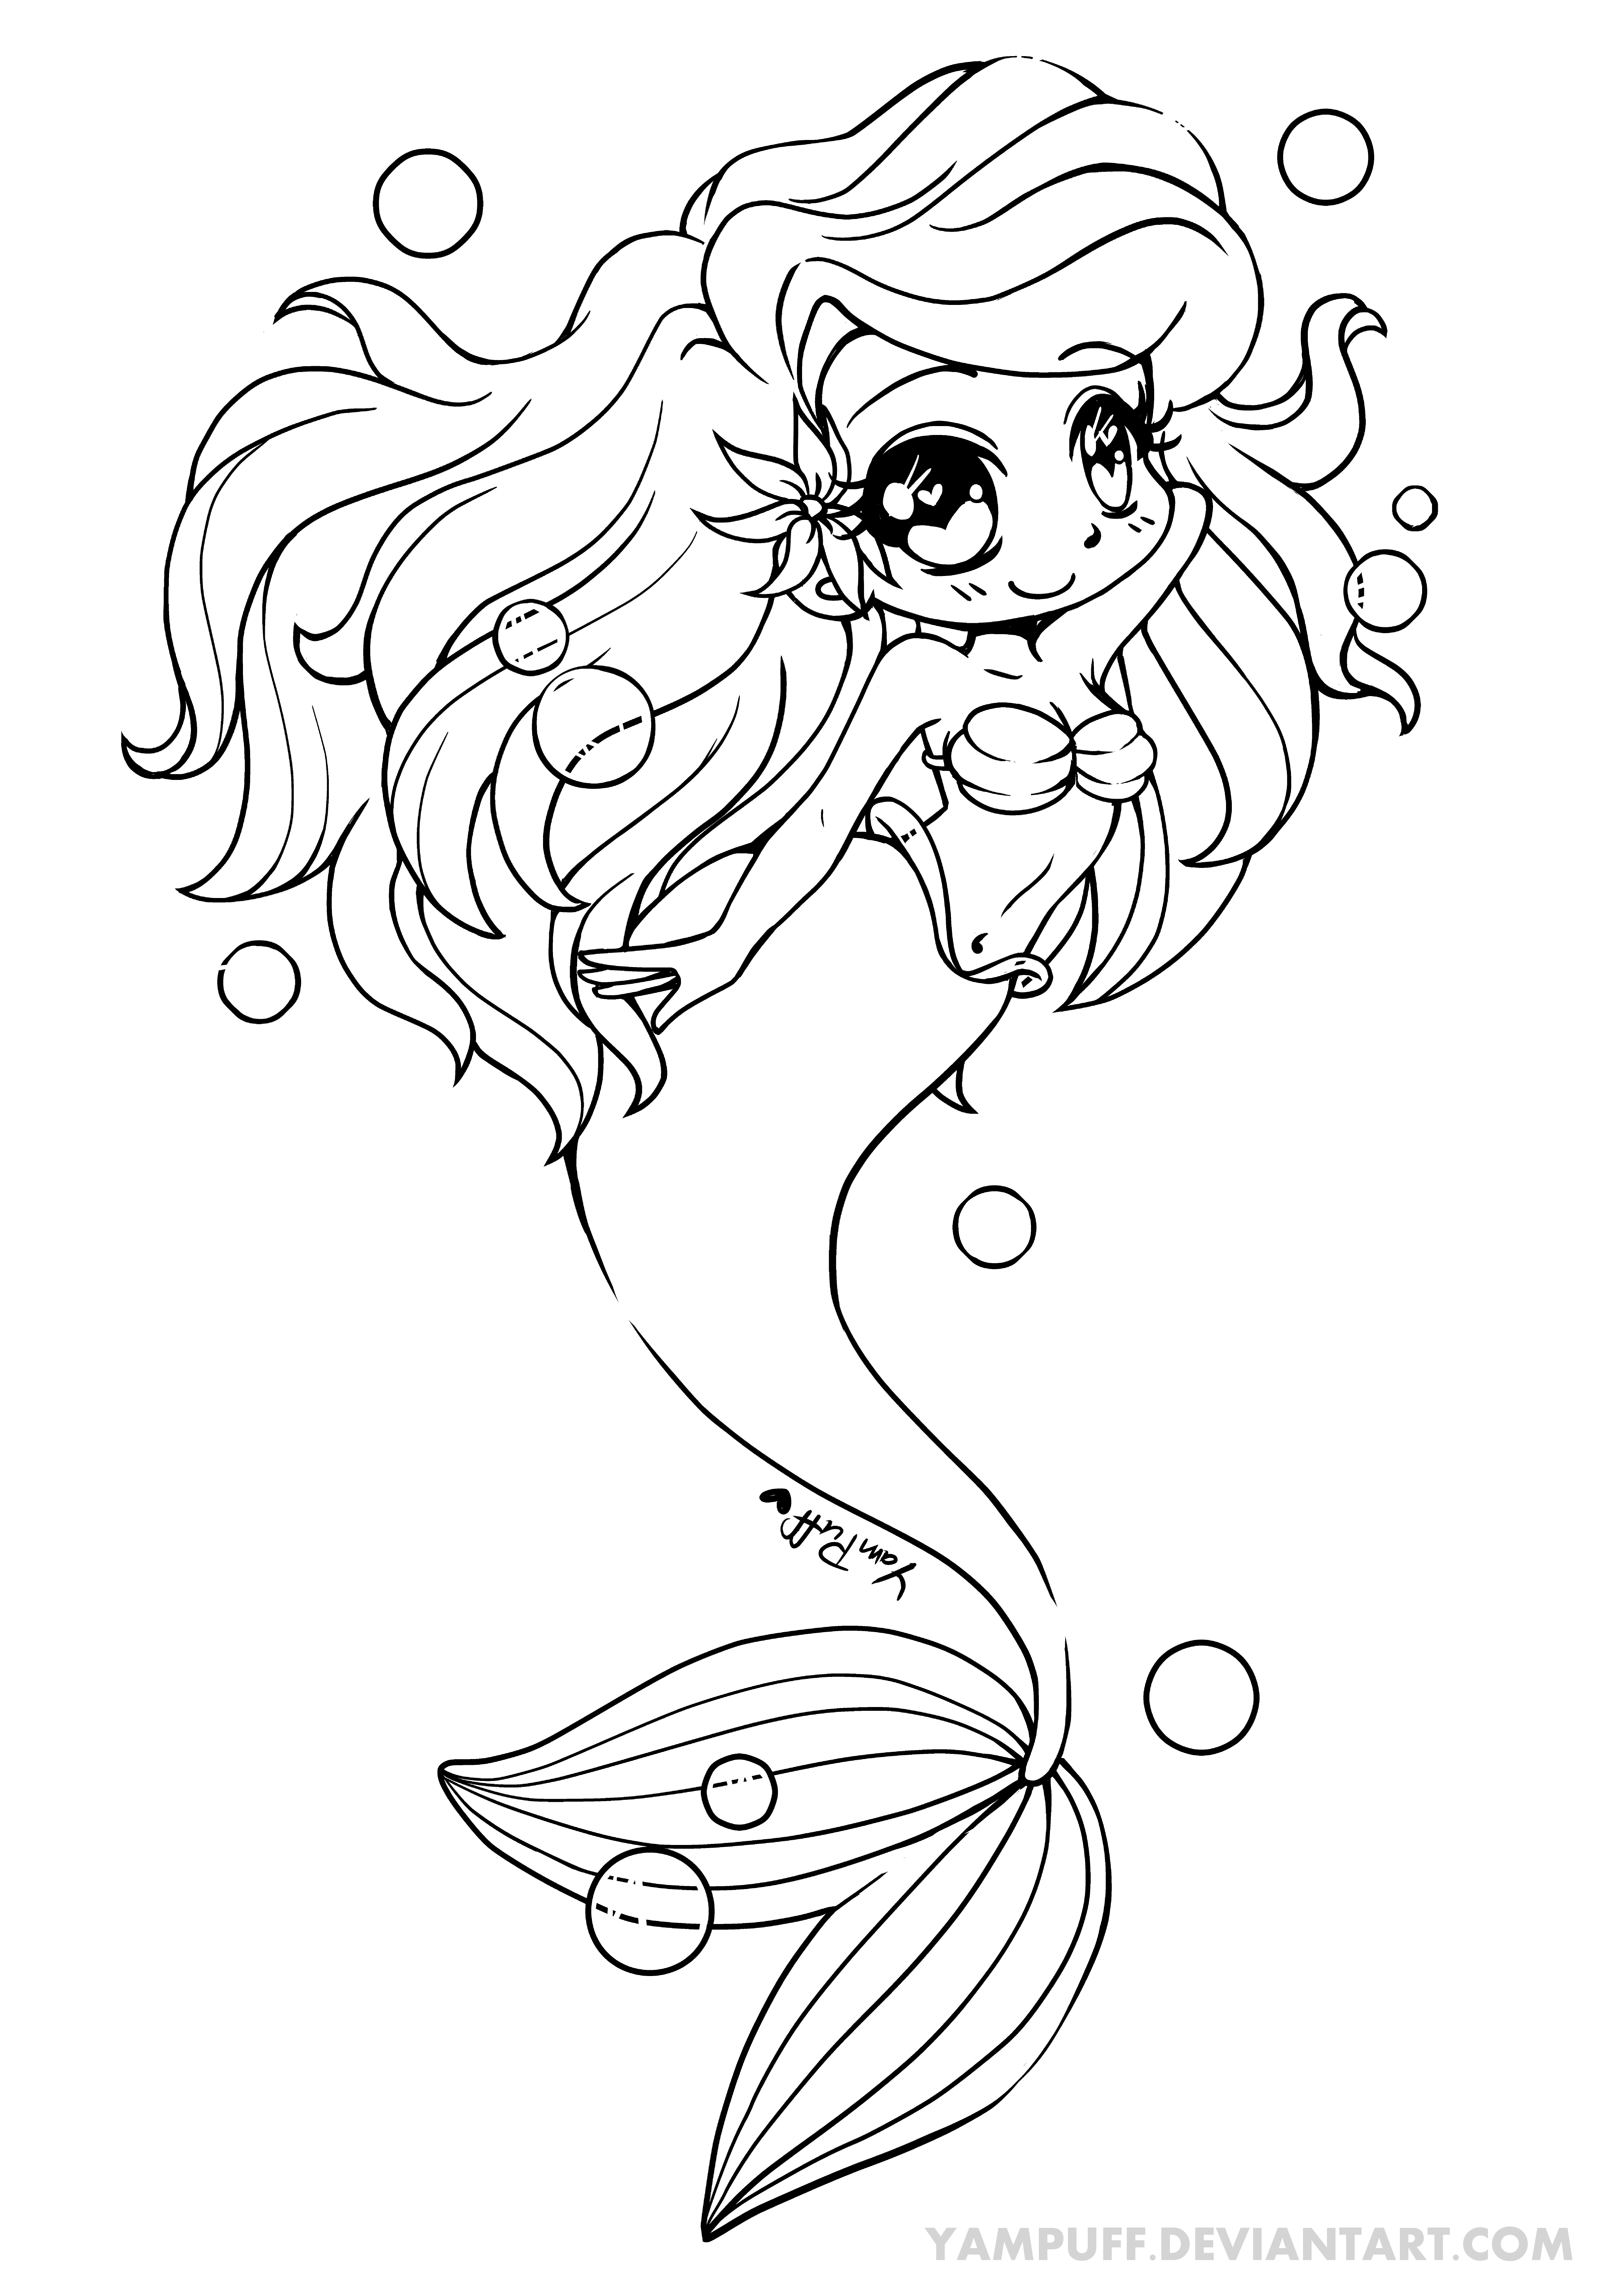 Ariel The Little Mermaid Mermay By Yampuff D5h5es4 Png 4 711 6 709 Pixels Mermaid Coloring Pages Chibi Coloring Pages Hello Kitty Colouring Pages